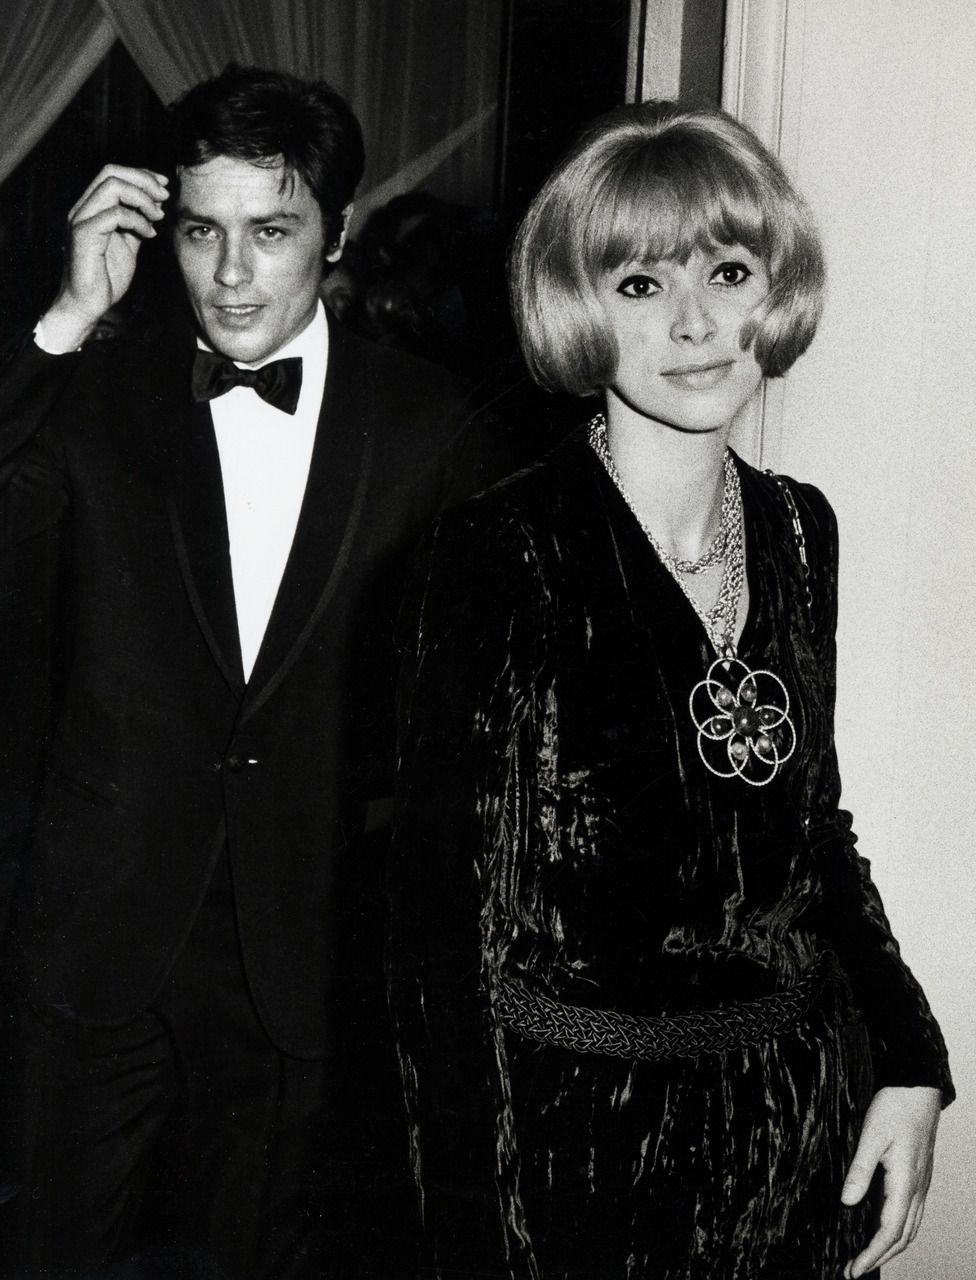 Alain Delon and Mireille Darc at the opera, 1970s | Delon, Alain delon, Anthony delon